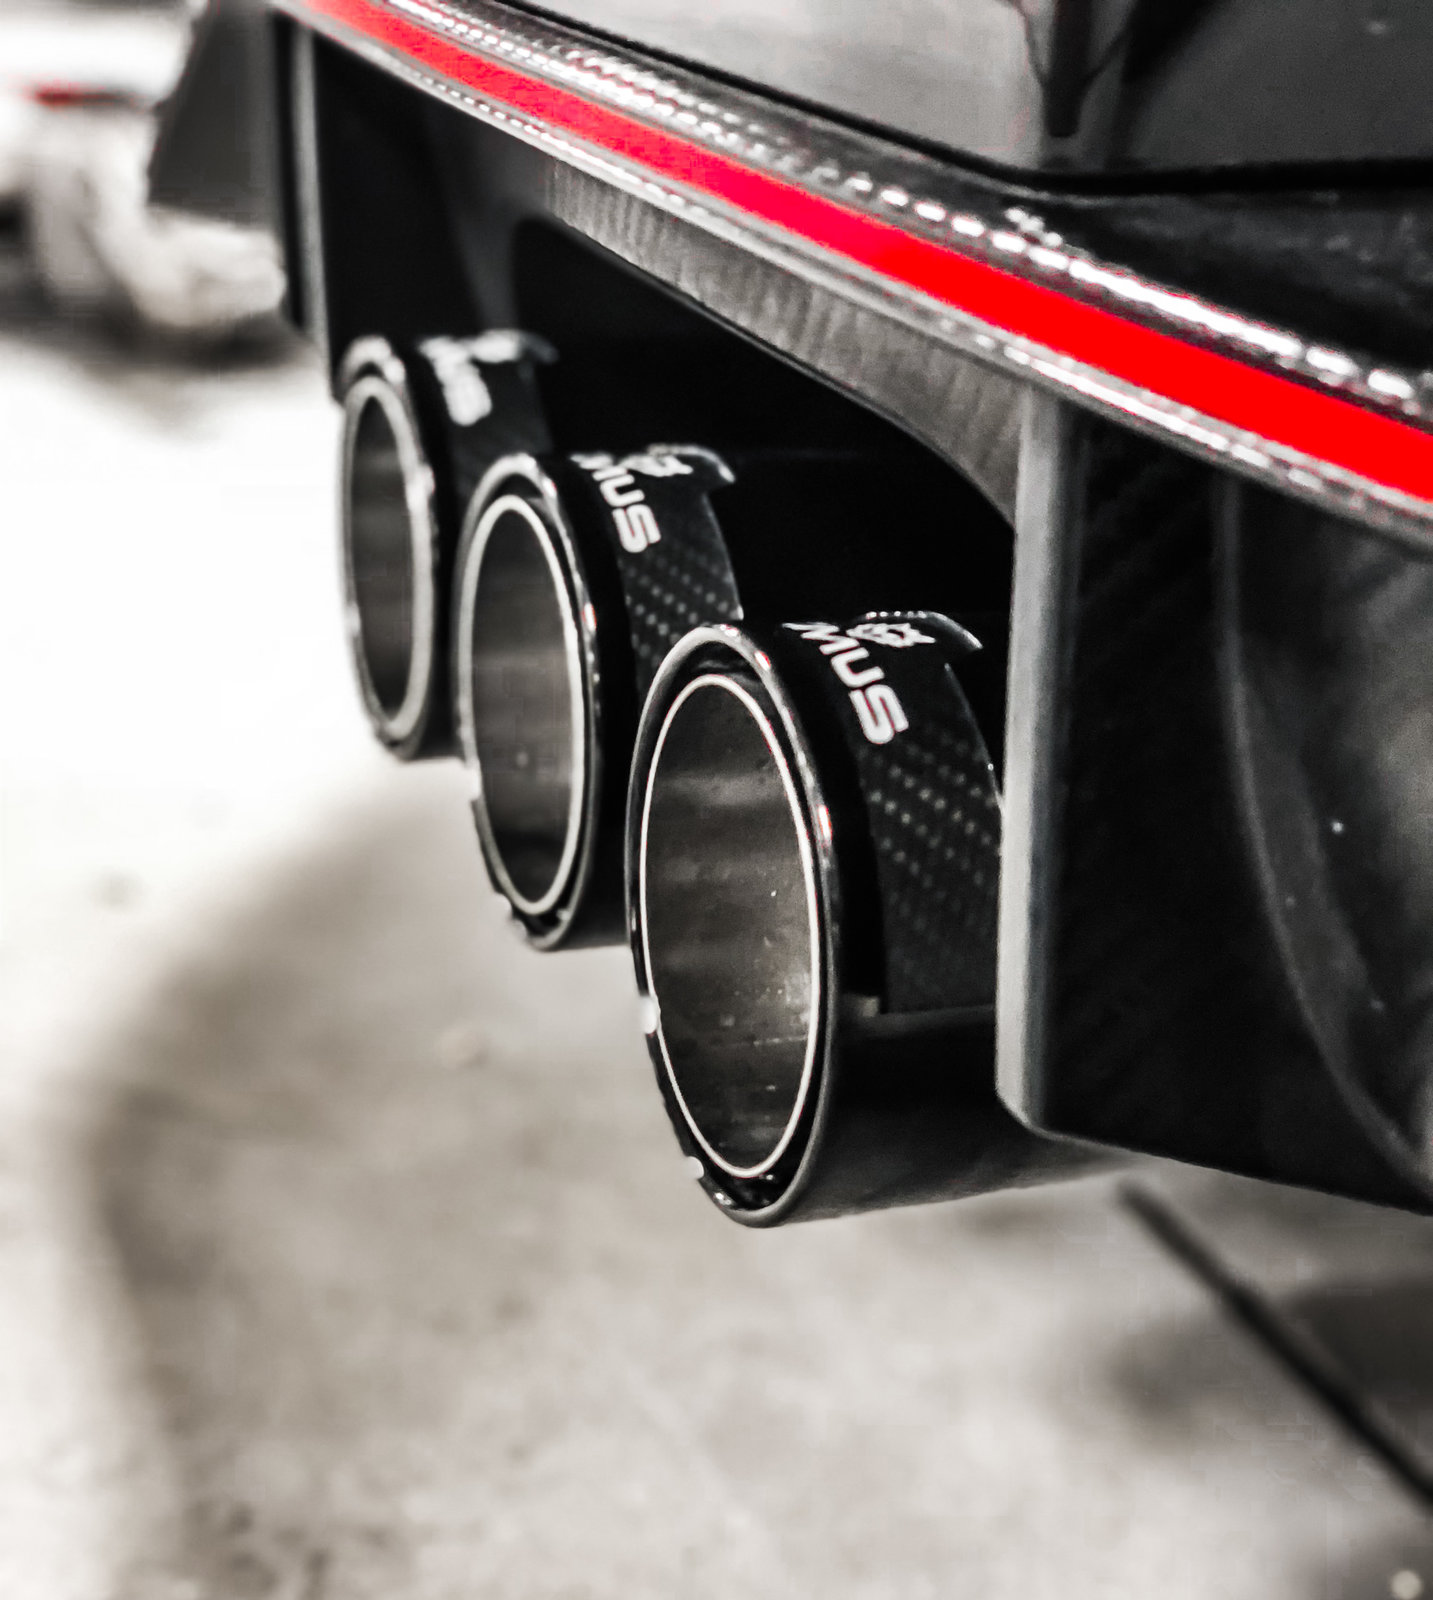 remus exhaust fk8 with dp fp 2016